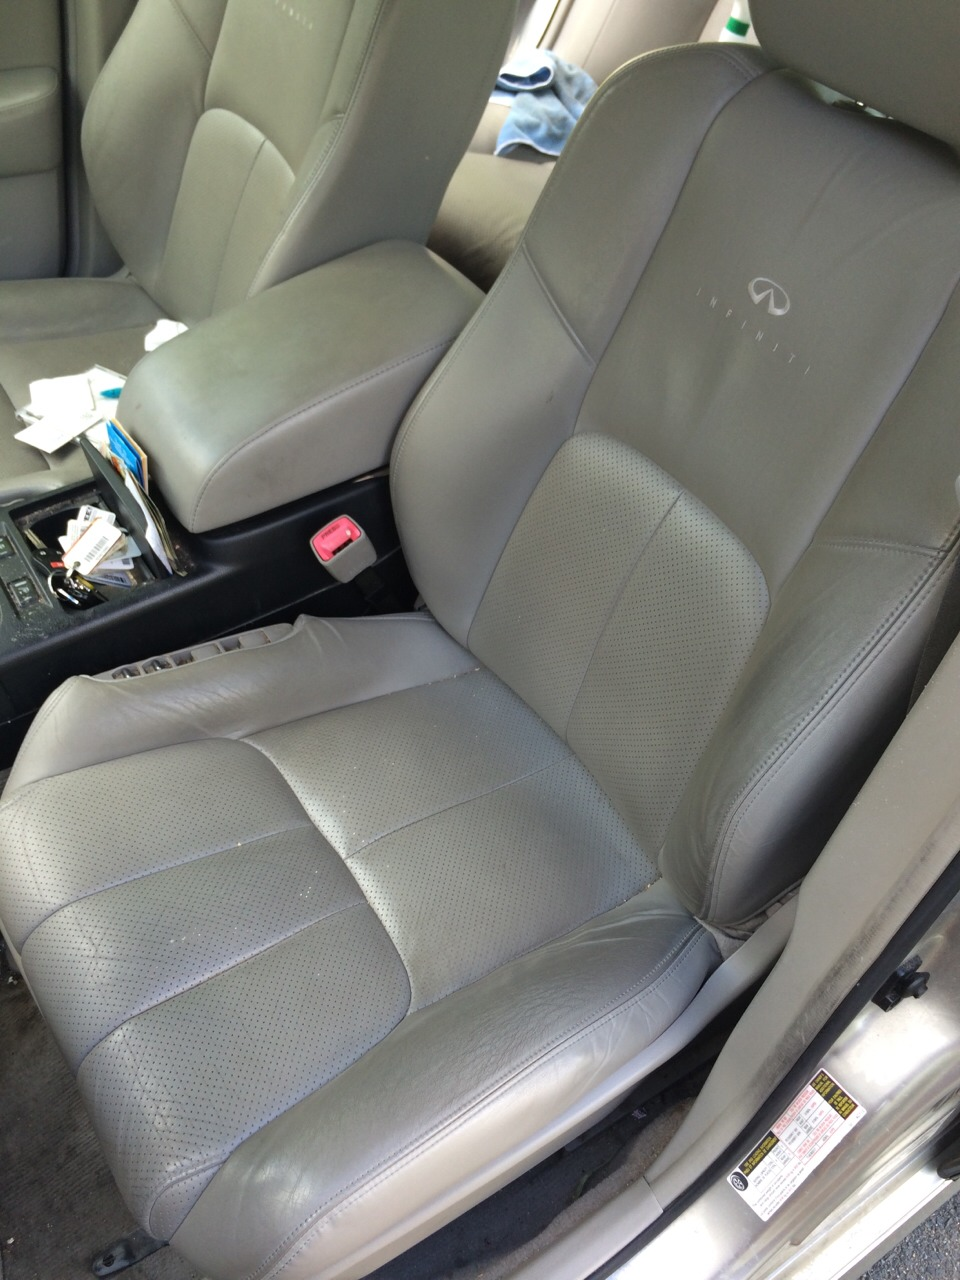 BEFORE- 2005 Infiniti with a fairly clean interior for the age